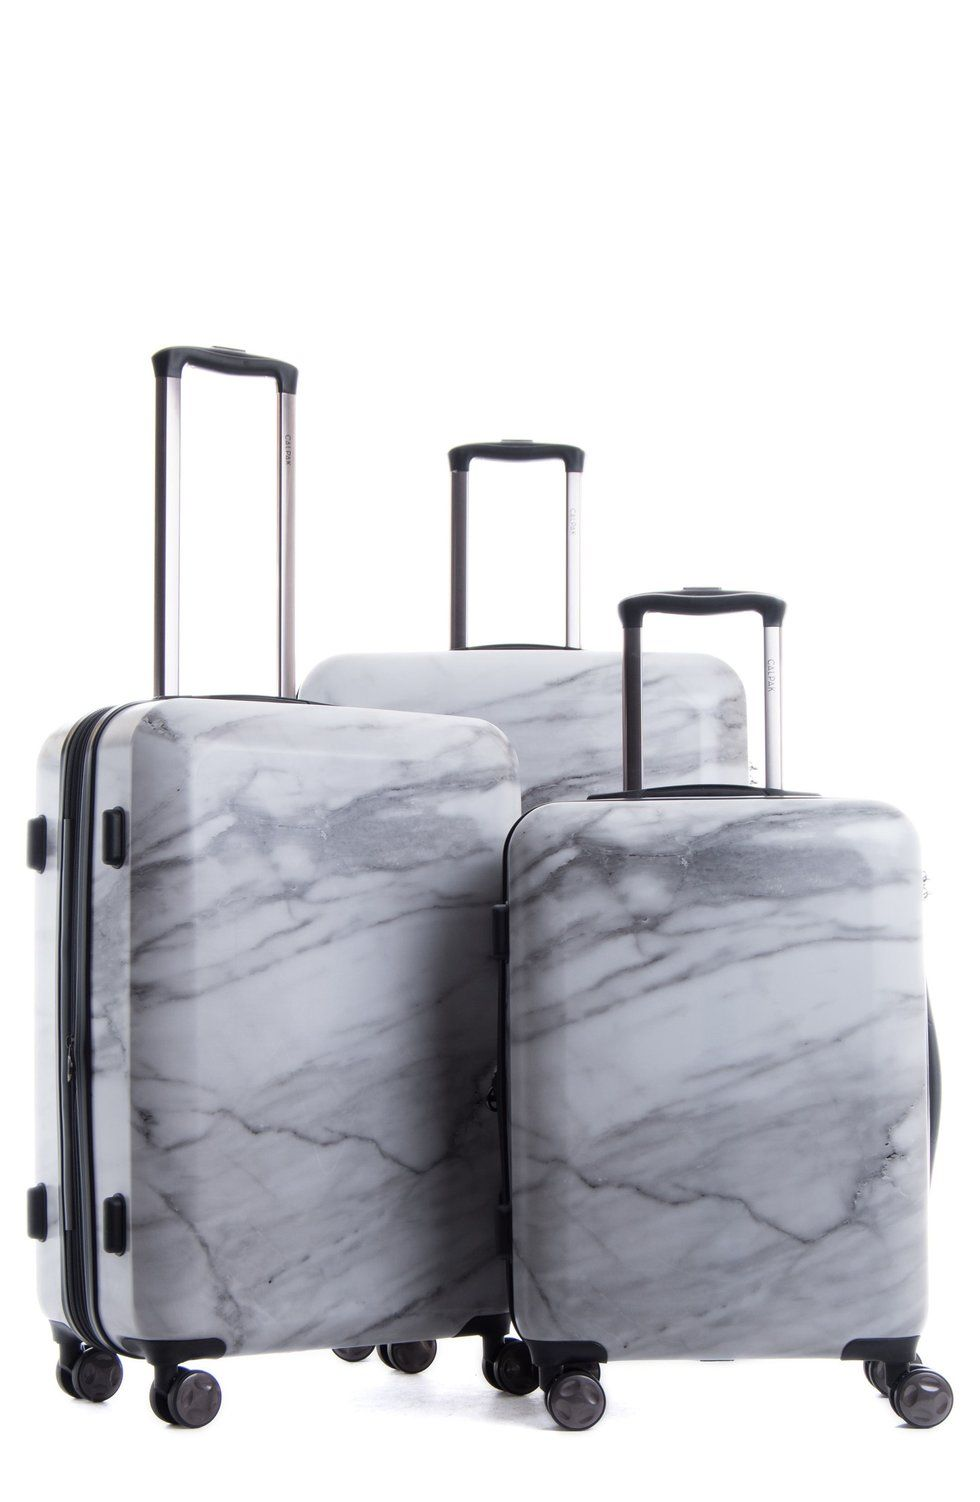 00d81f432 Calpak, Astyll 3-Piece Luggage Set in Marble, $385